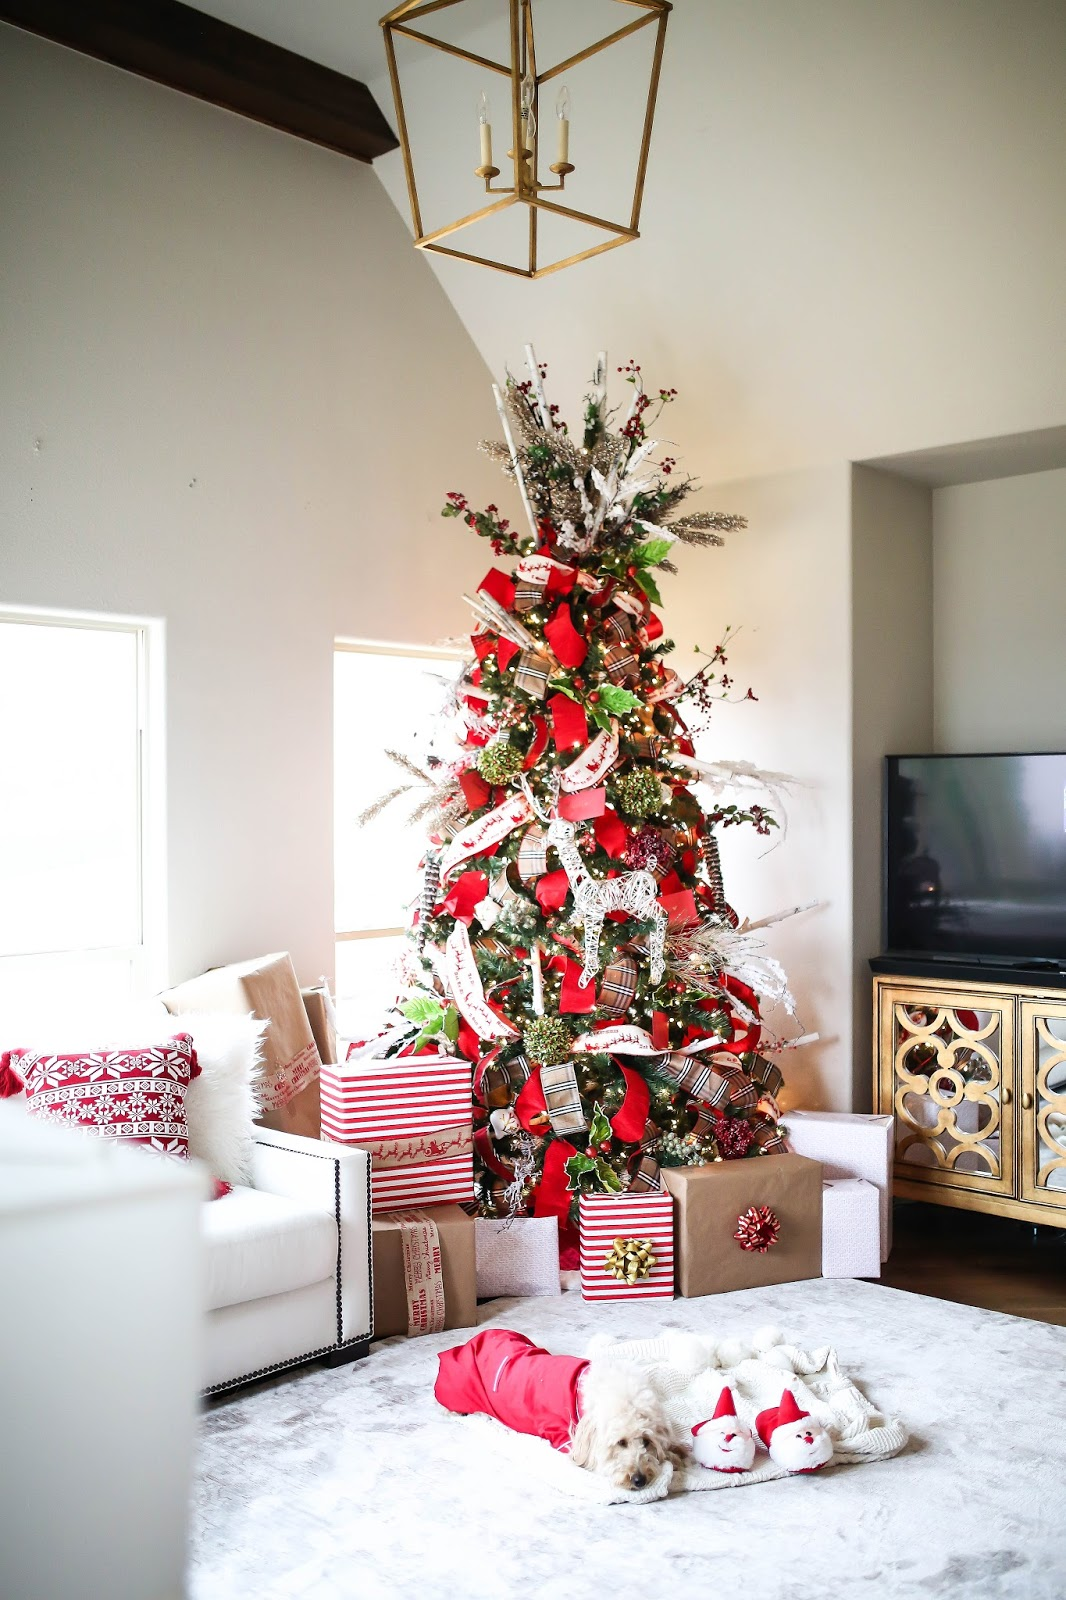 Christmas Time In Our Home The Sweetest Thing Bloglovin